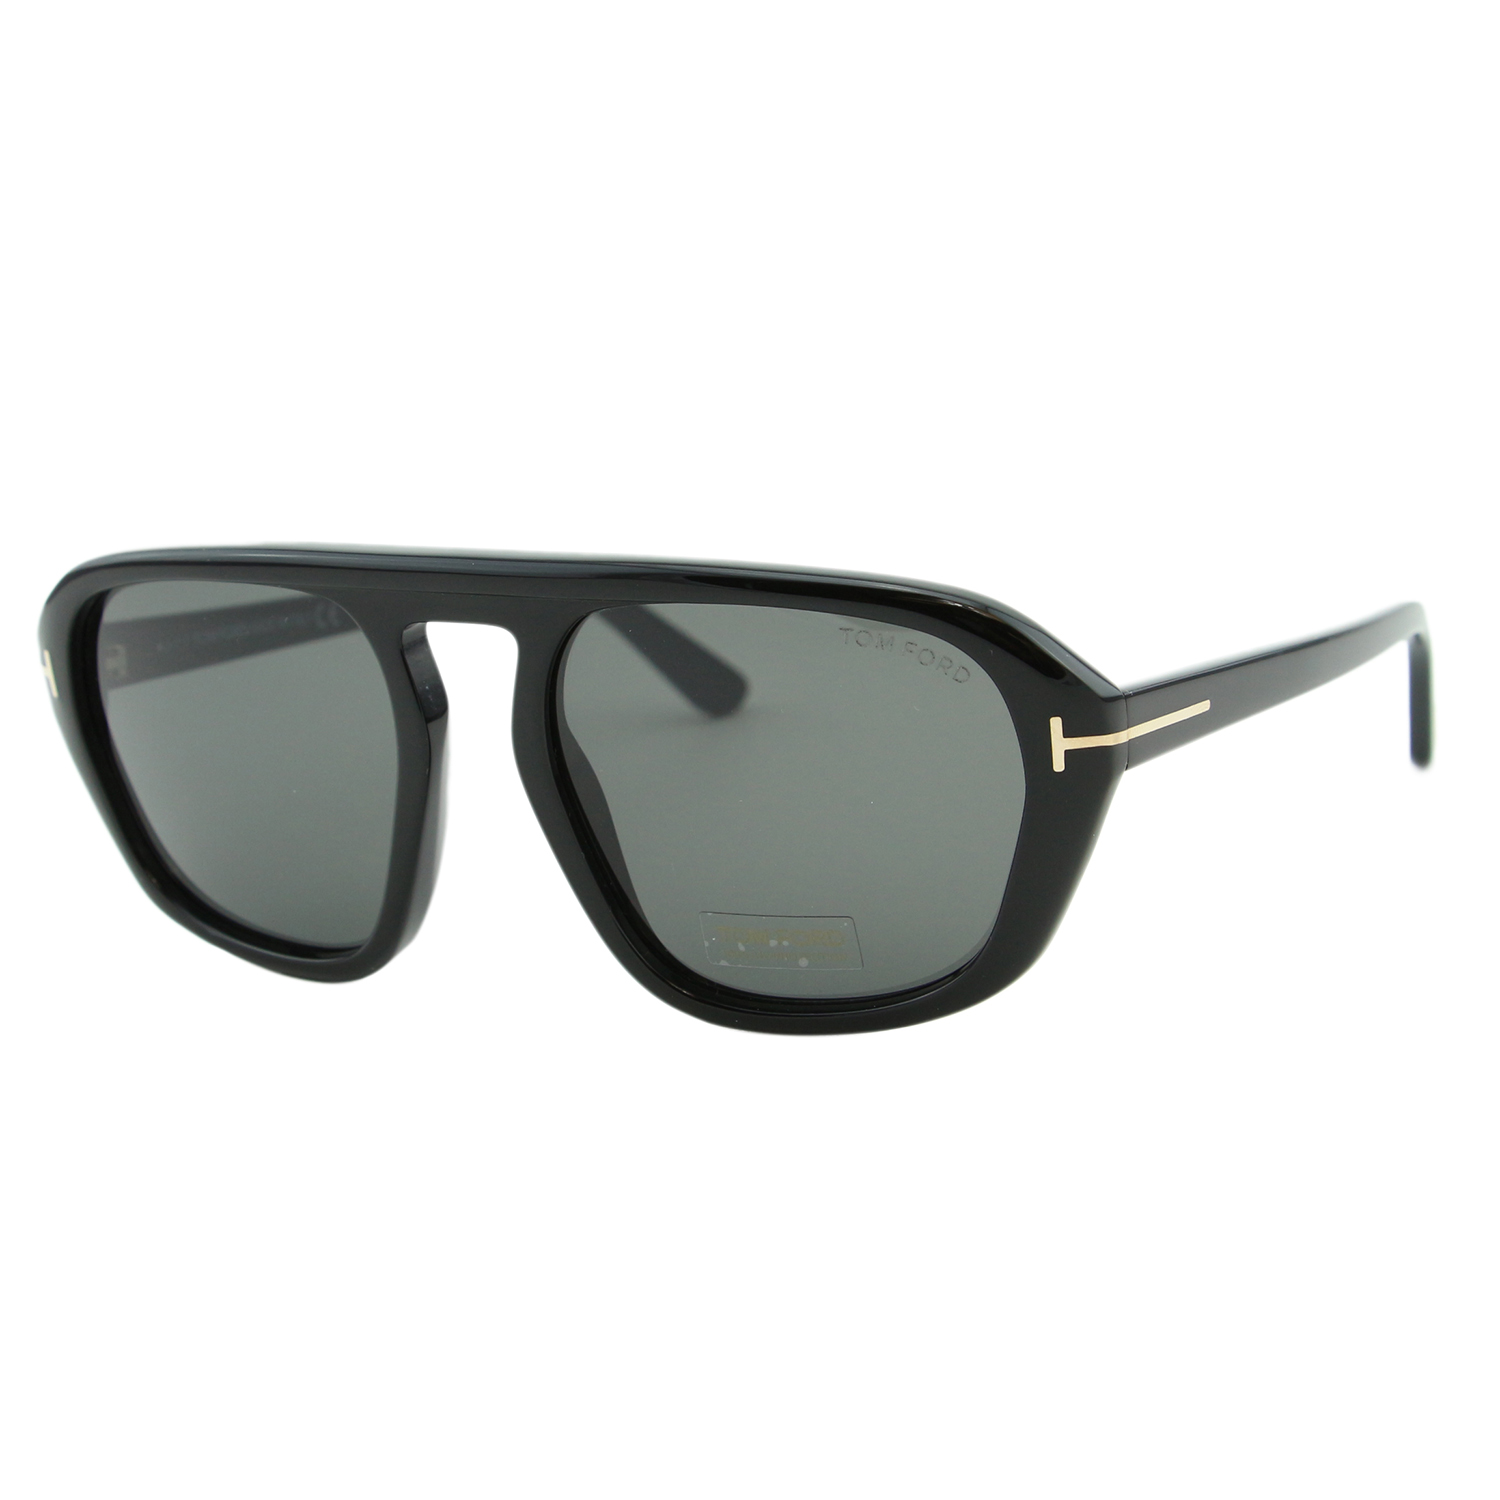 2018 Tom Ford - 02 FT0634 Hombre Negro David Marco Grueso ...